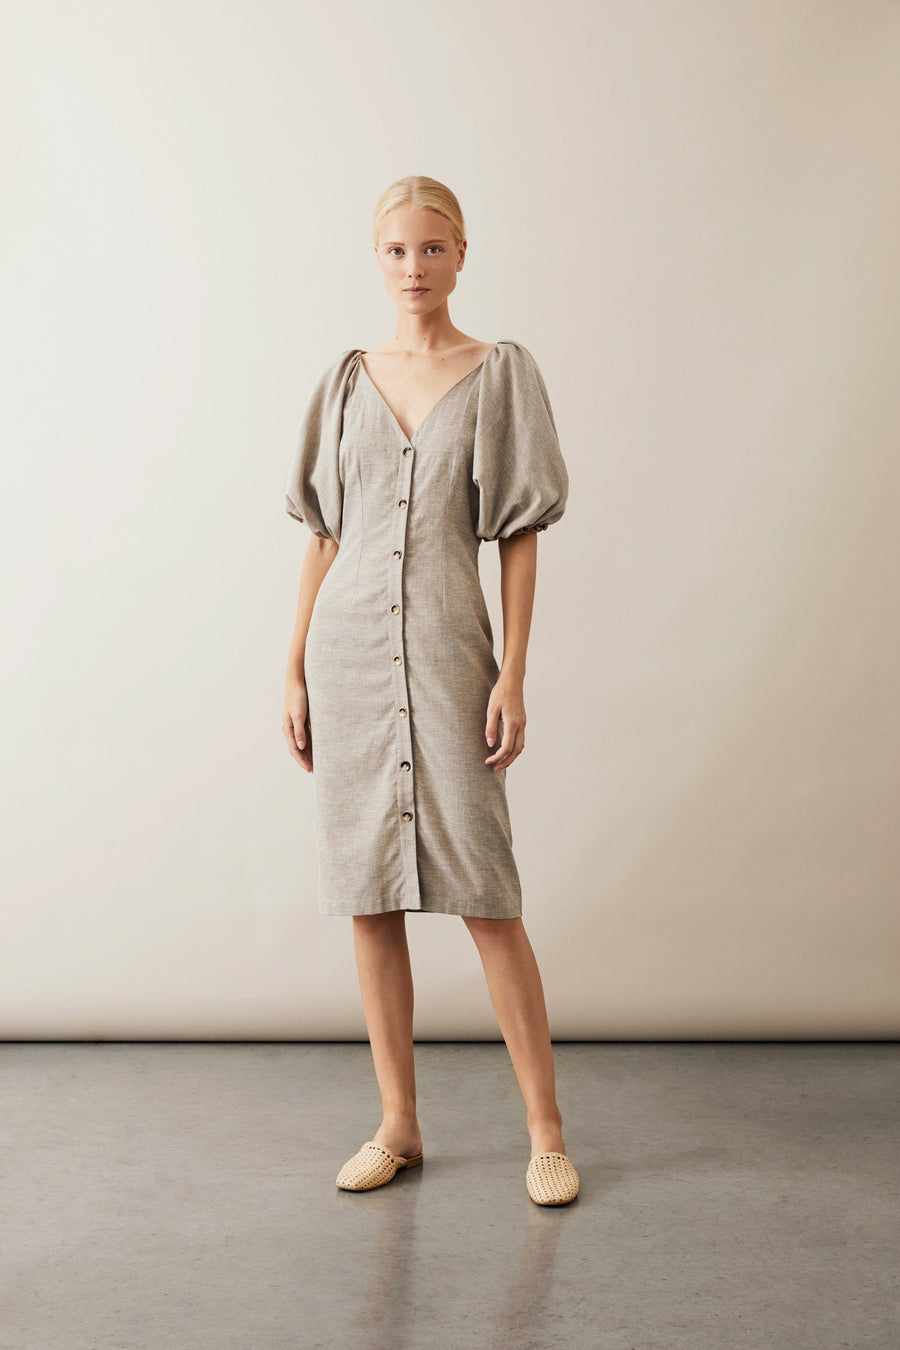 BASIN DRESS - LINEN Dress Stylein